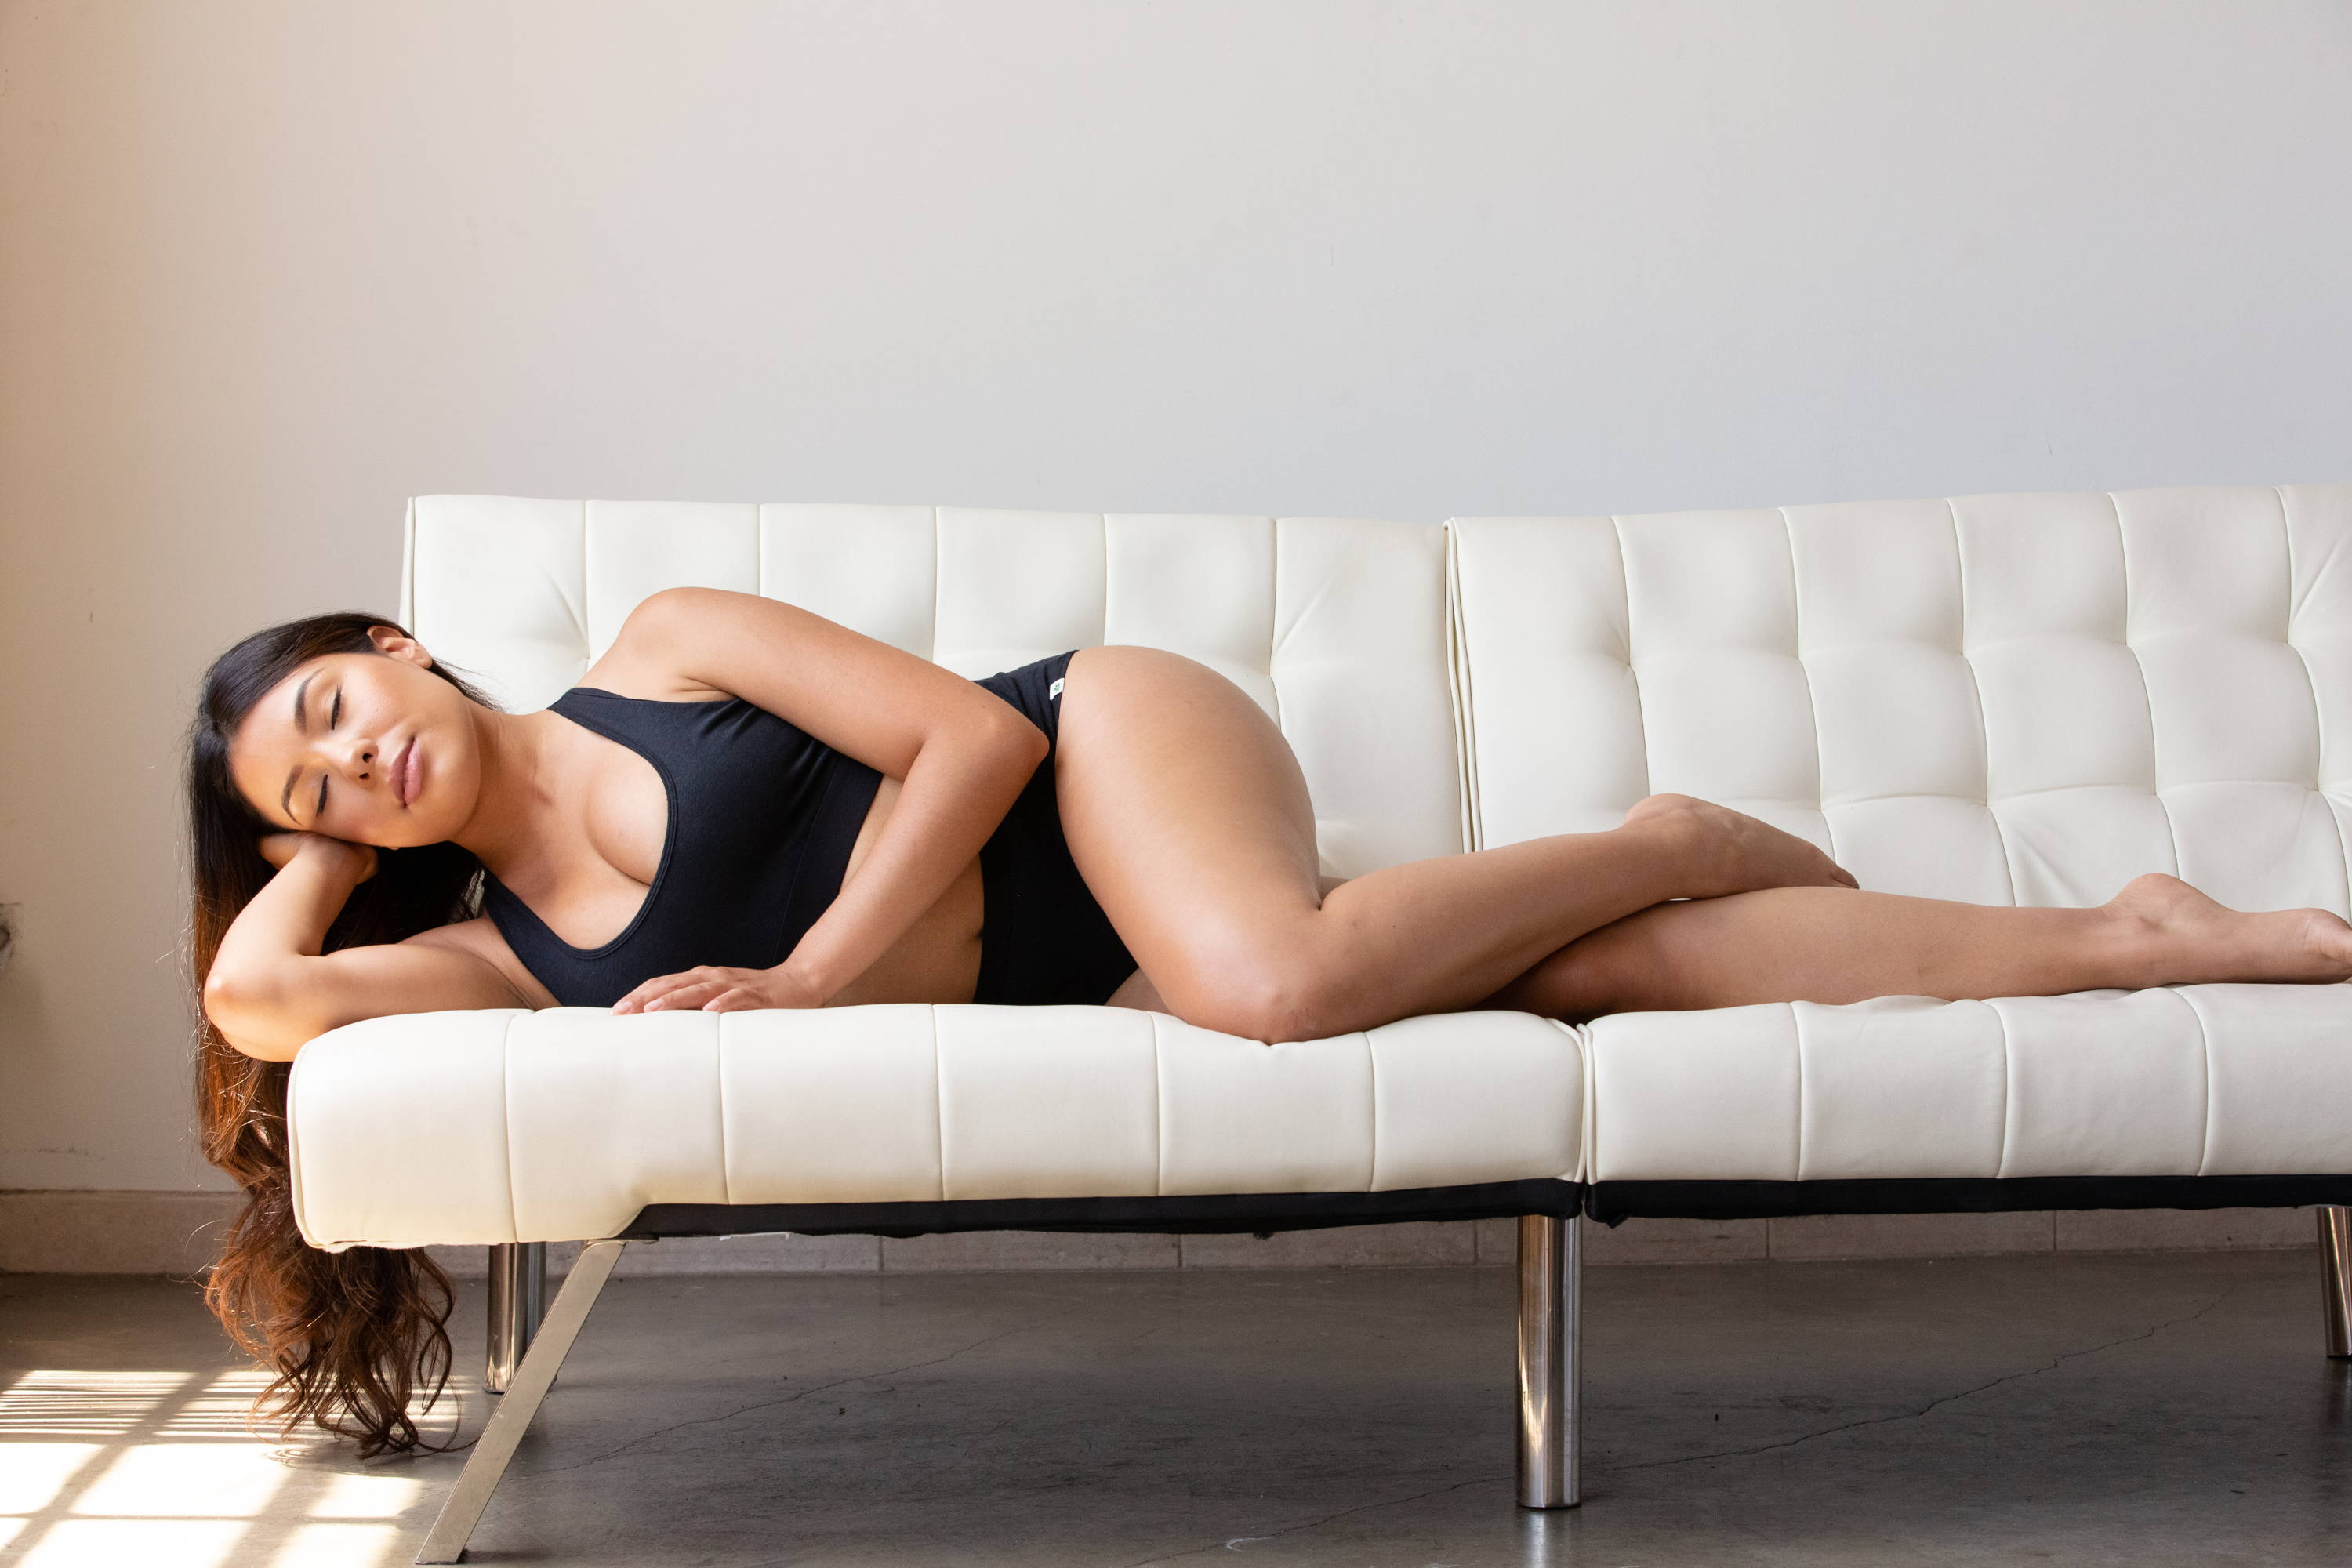 A woman in WAMA hemp racerback bralette and high waisted underwear sleeps on a white sofa.